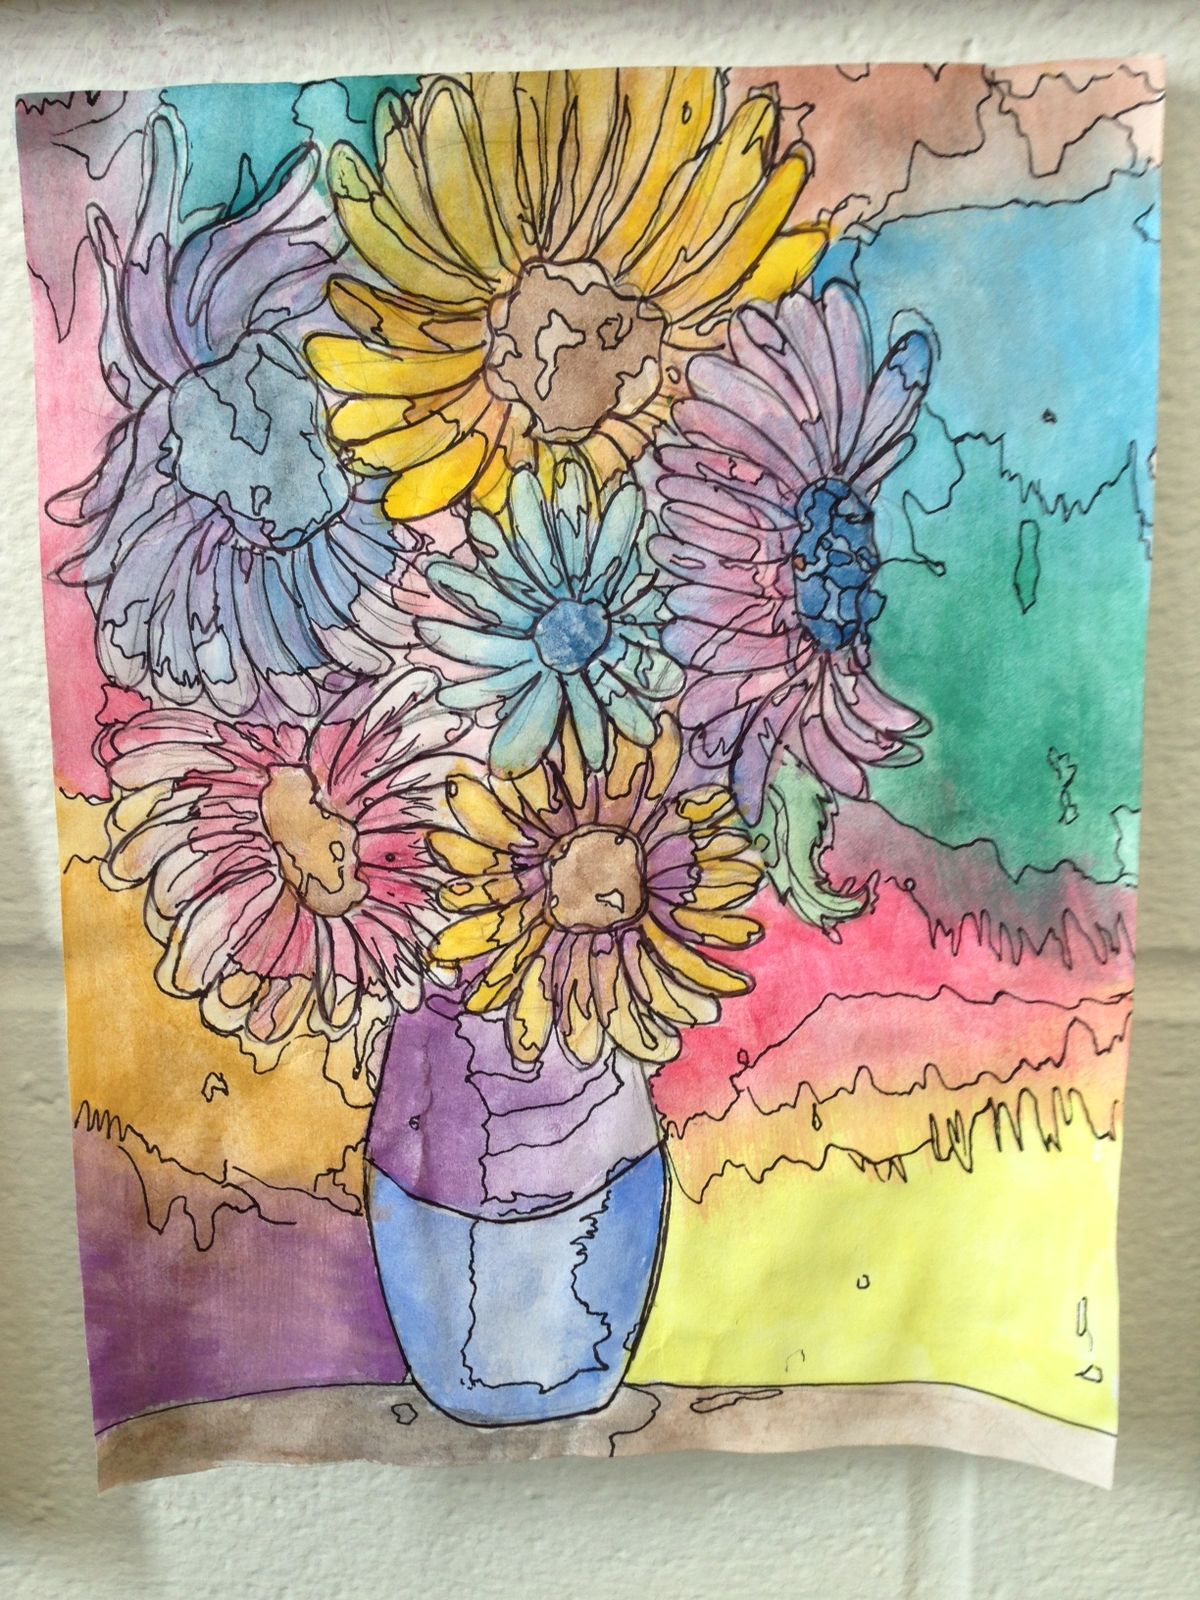 Pin by Kelsey Whaley on Art I in 2019 | Art curriculum, School art